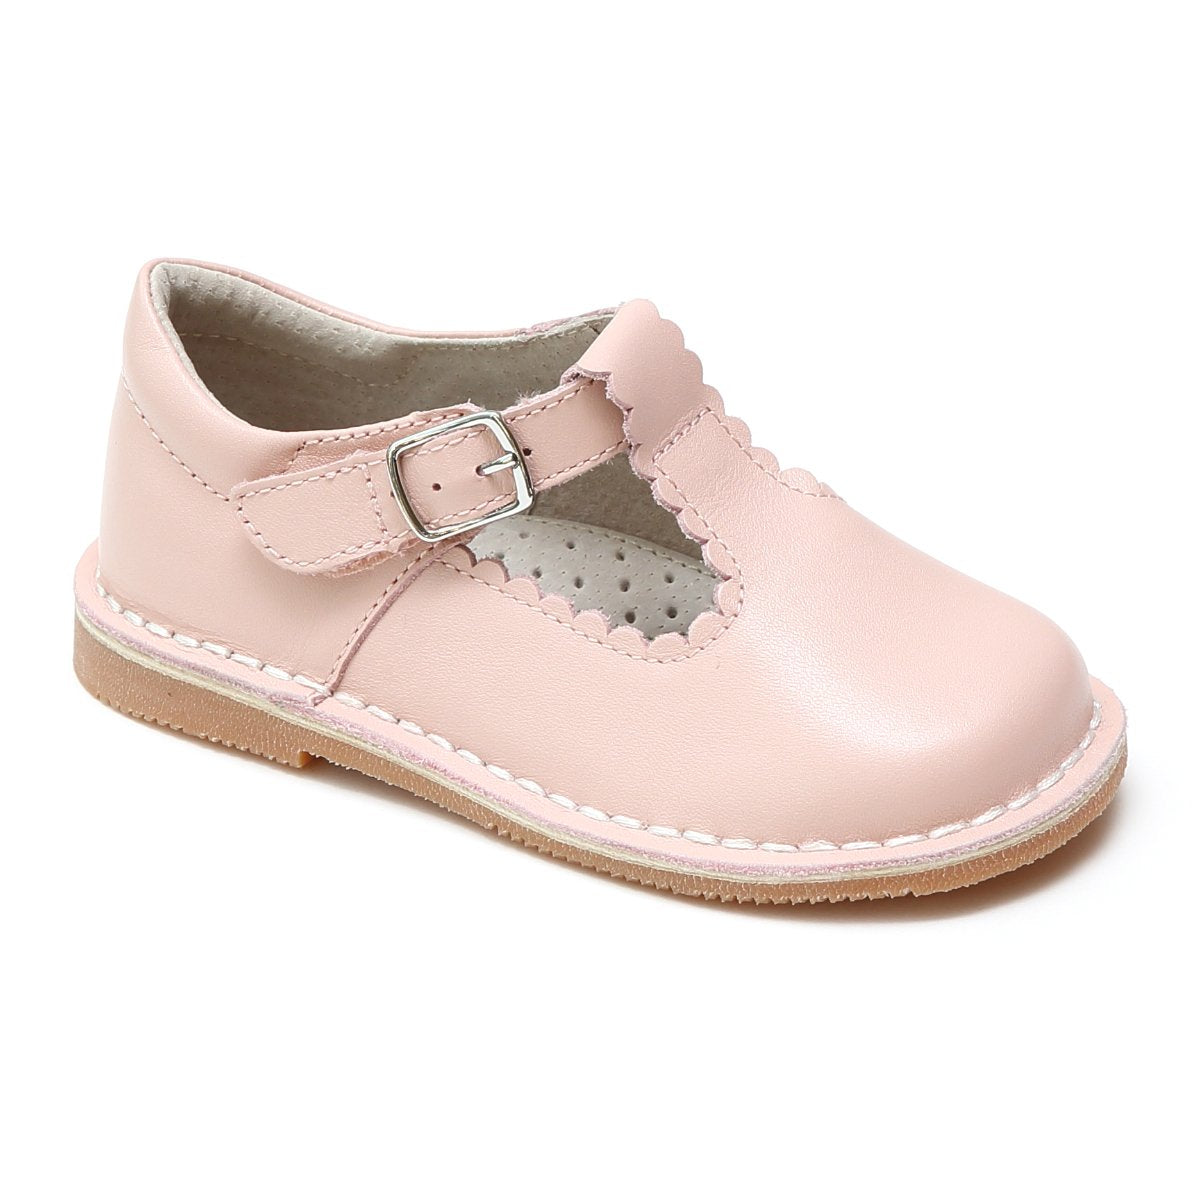 Selina Scalloped T-Strap Stitch Down Mary Jane - Pink